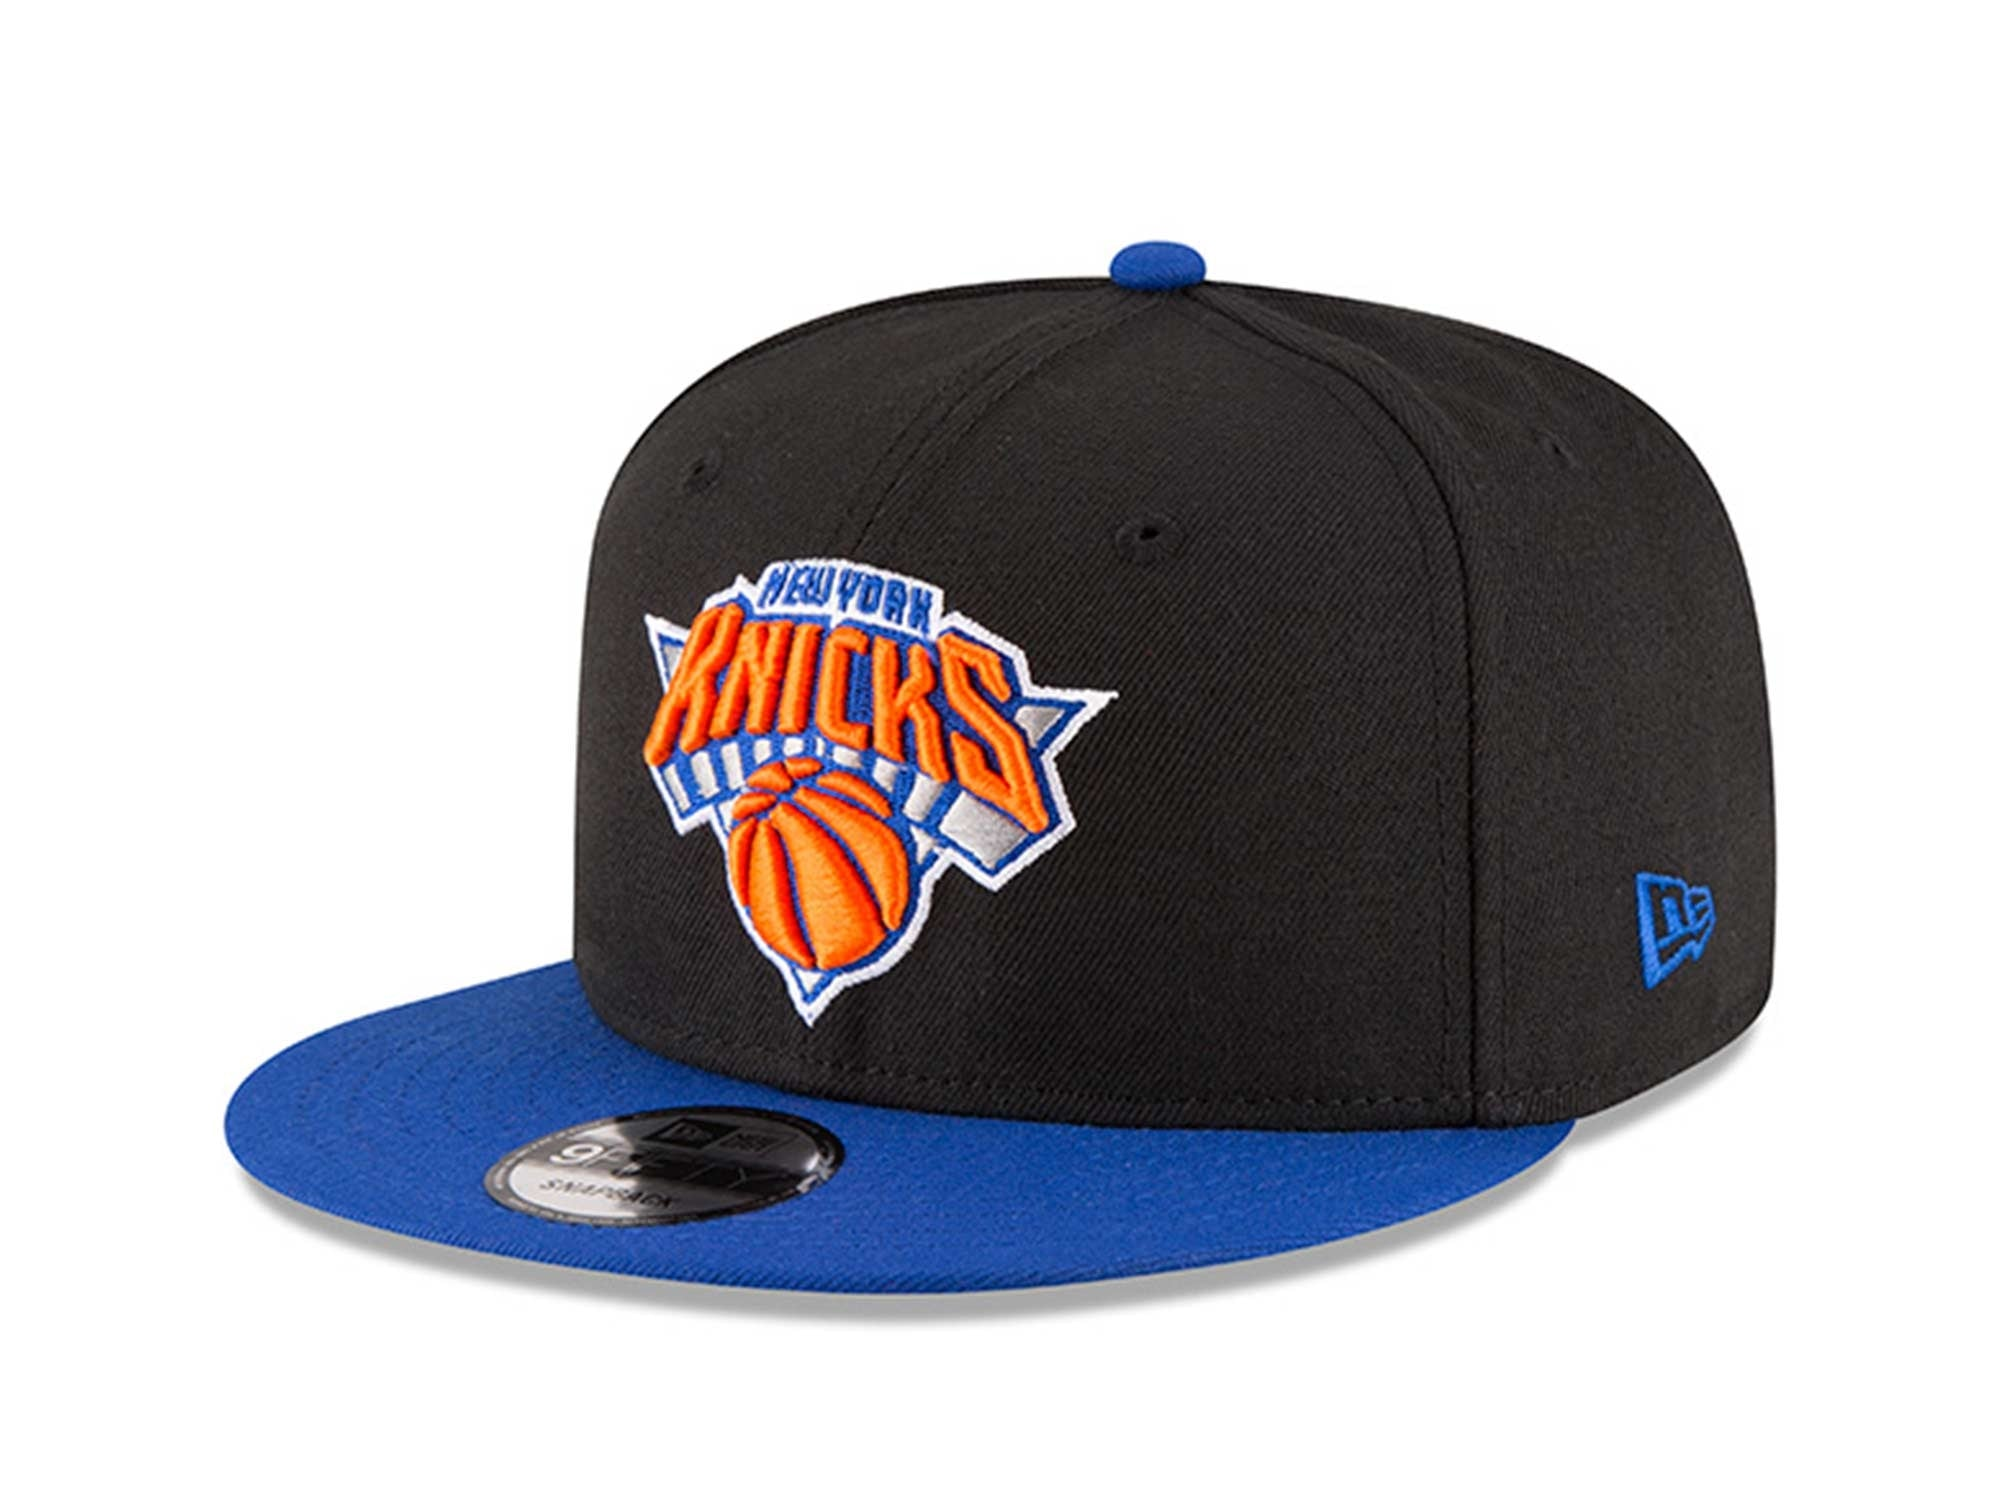 Jockey New Era Nba New York Knicks 950 Hombre